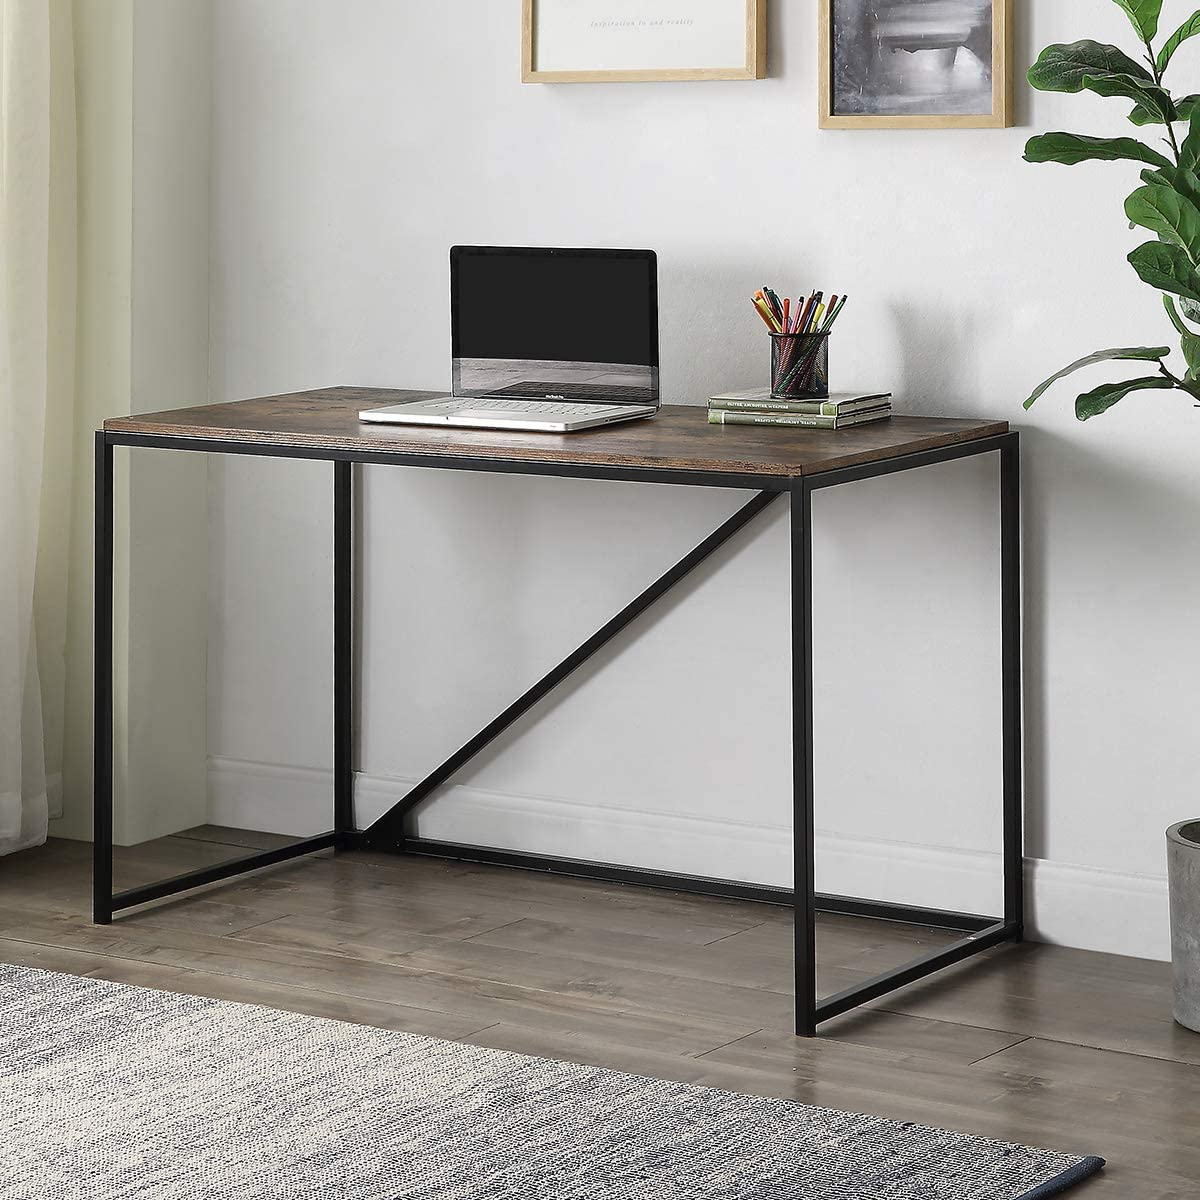 SSLine 46 inch Home Office Computer Desk,Metal and Wood Home Office Desk,Modern Simple Small Desk Laptop Table Study Writing Table for Home Office Style-2